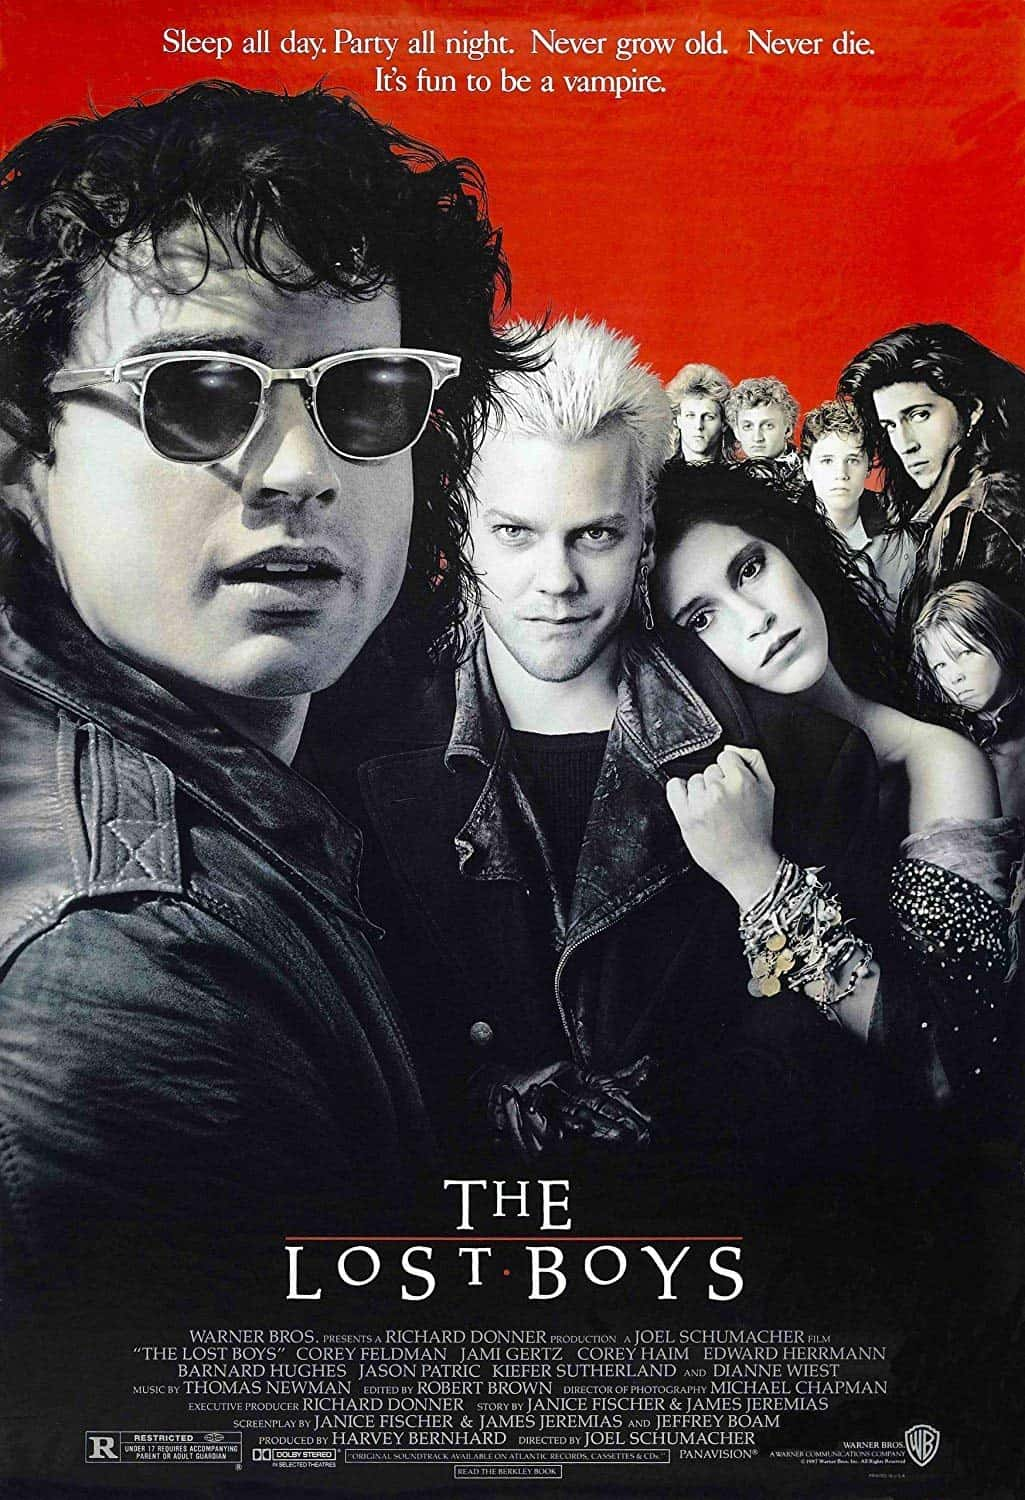 The Lost Boys poster - LOST BOYS: The CW's Female-Driven Series Isn't Designed for Hardcore Fans?